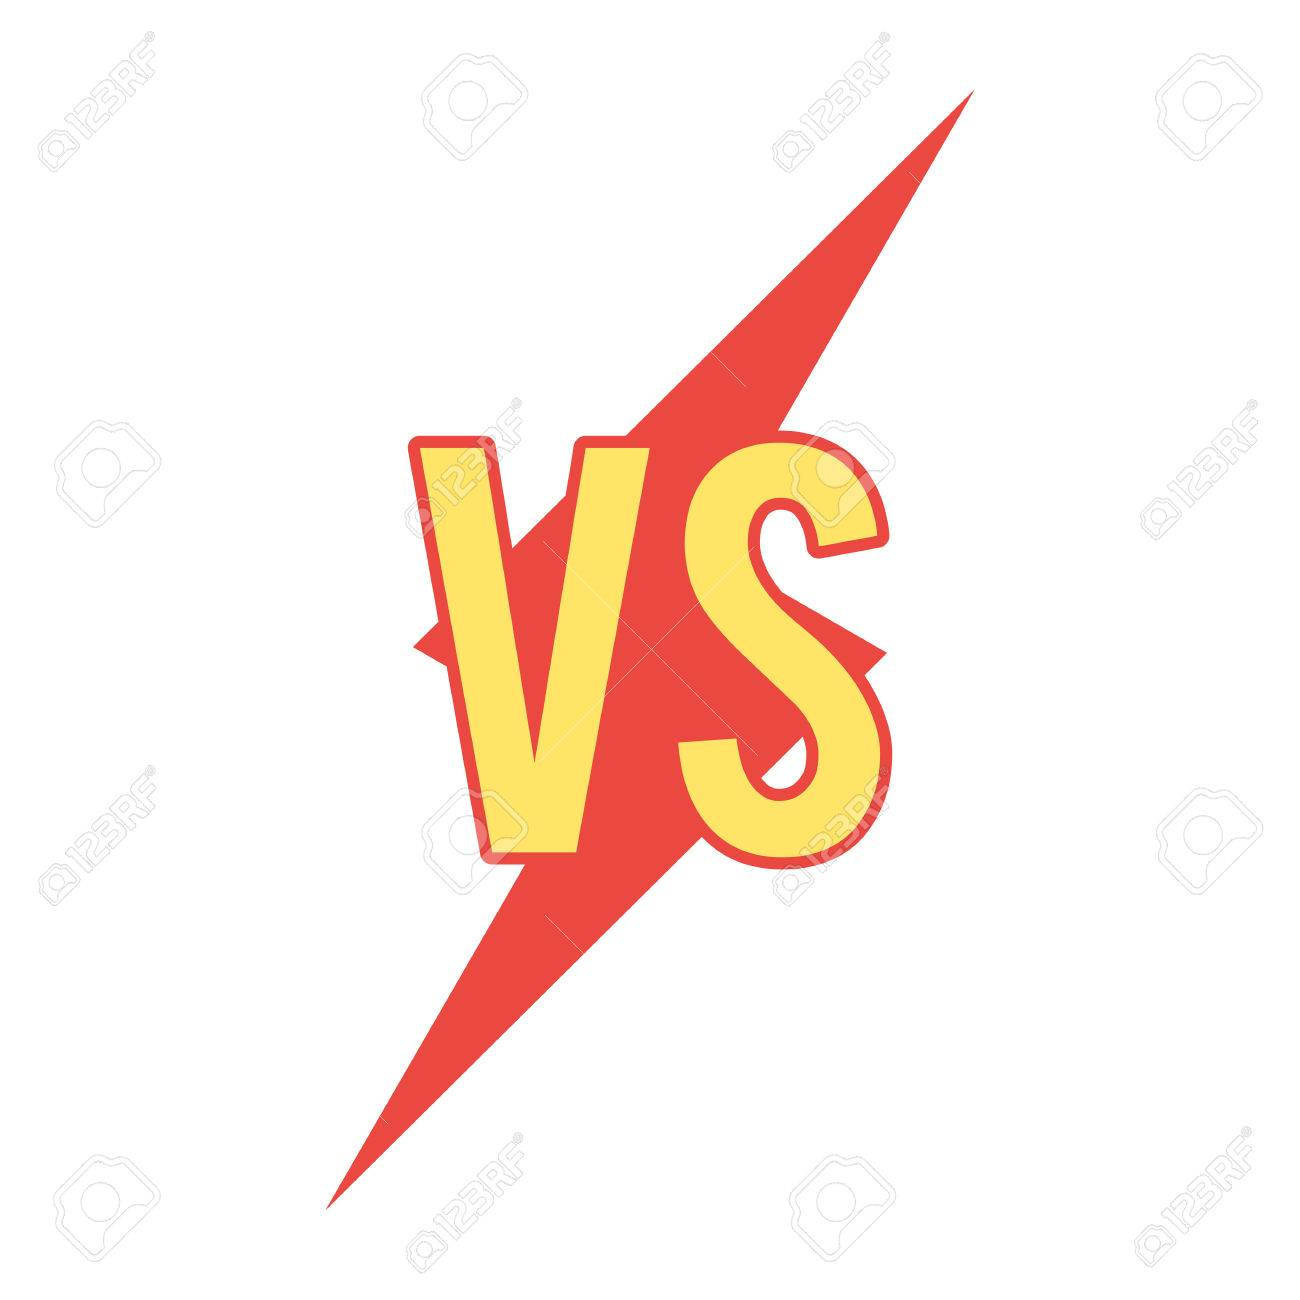 Versus Sign On Flash Shape Stock Photo Picture And Royalty Free